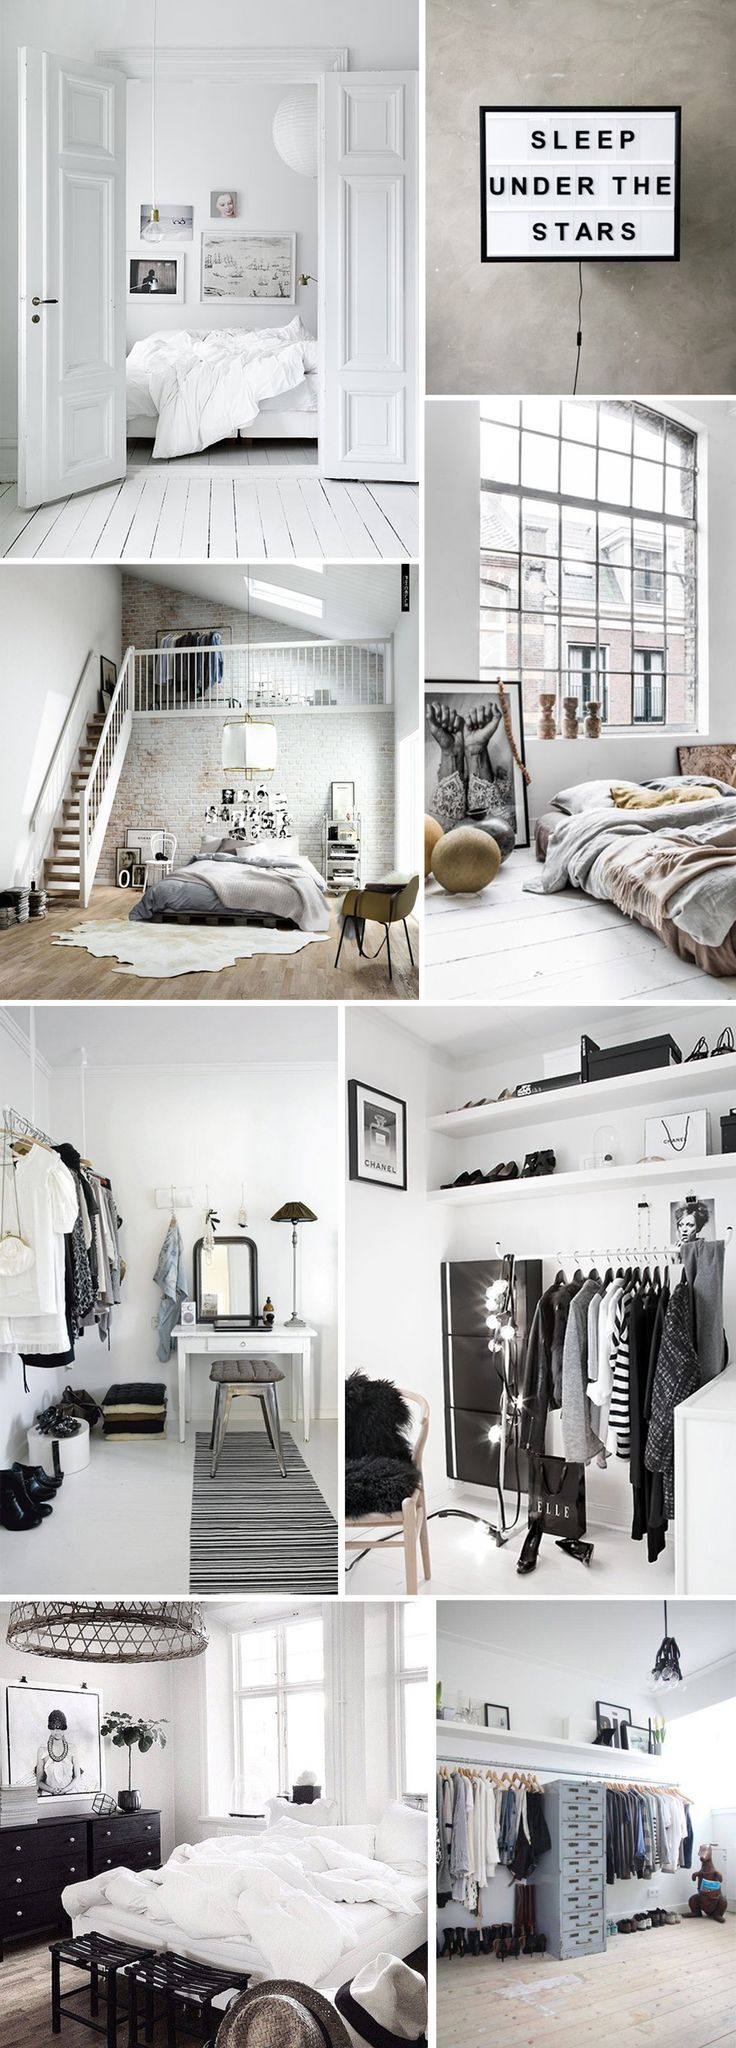 best 25 black white bedrooms ideas on pinterest - Black White And Silver Bedroom Ideas